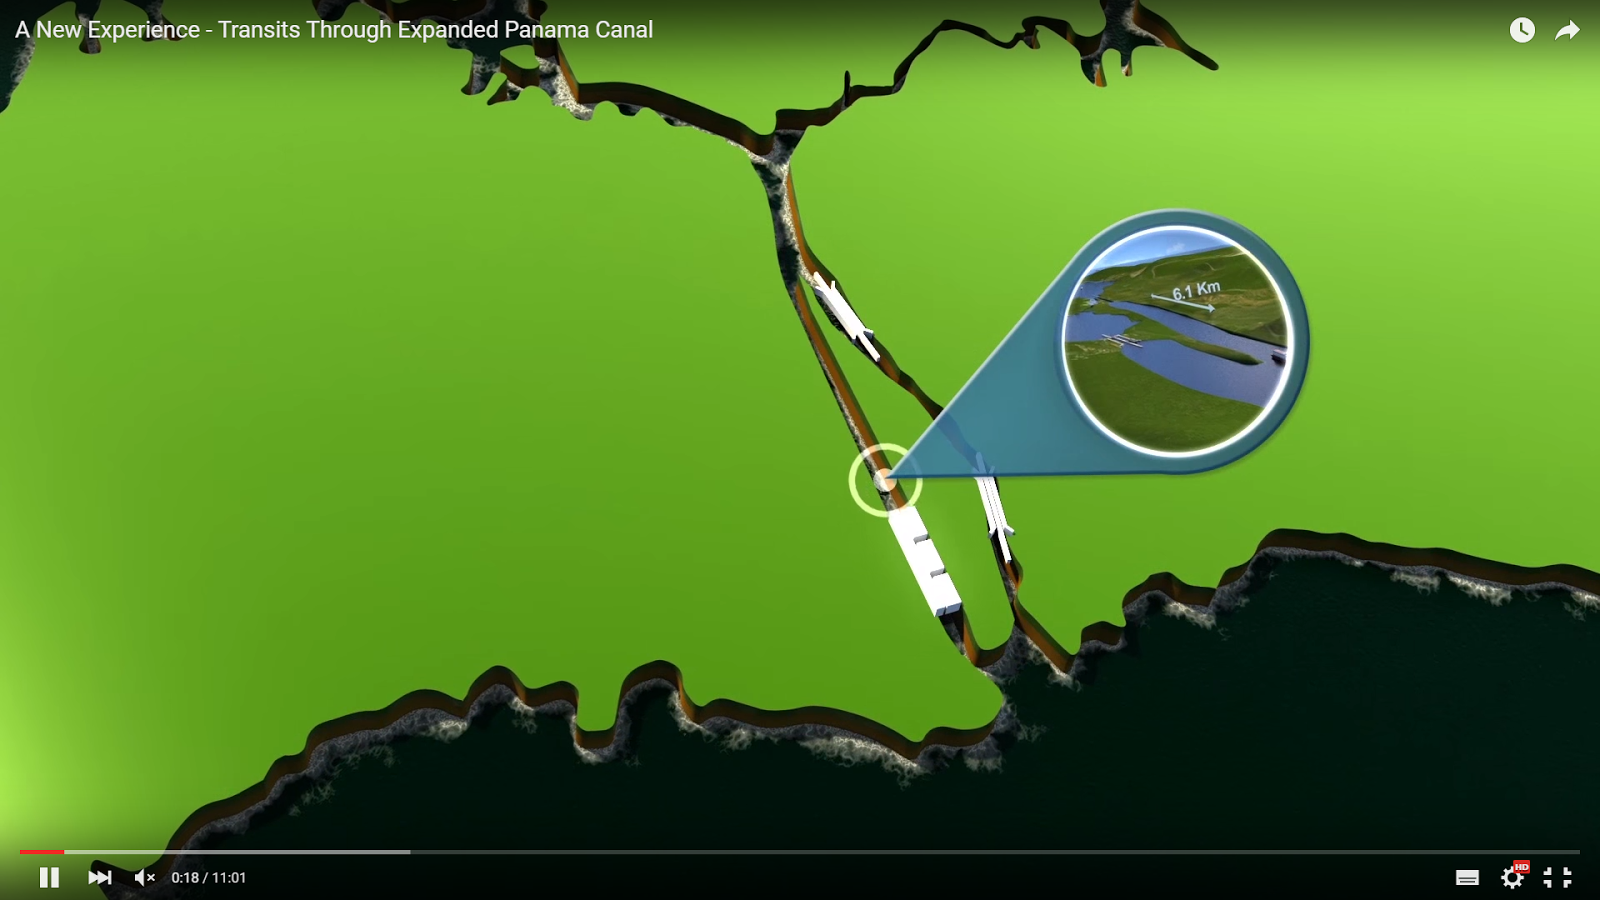 WATCH: Here's How the Expanded Panama Canal Will Work